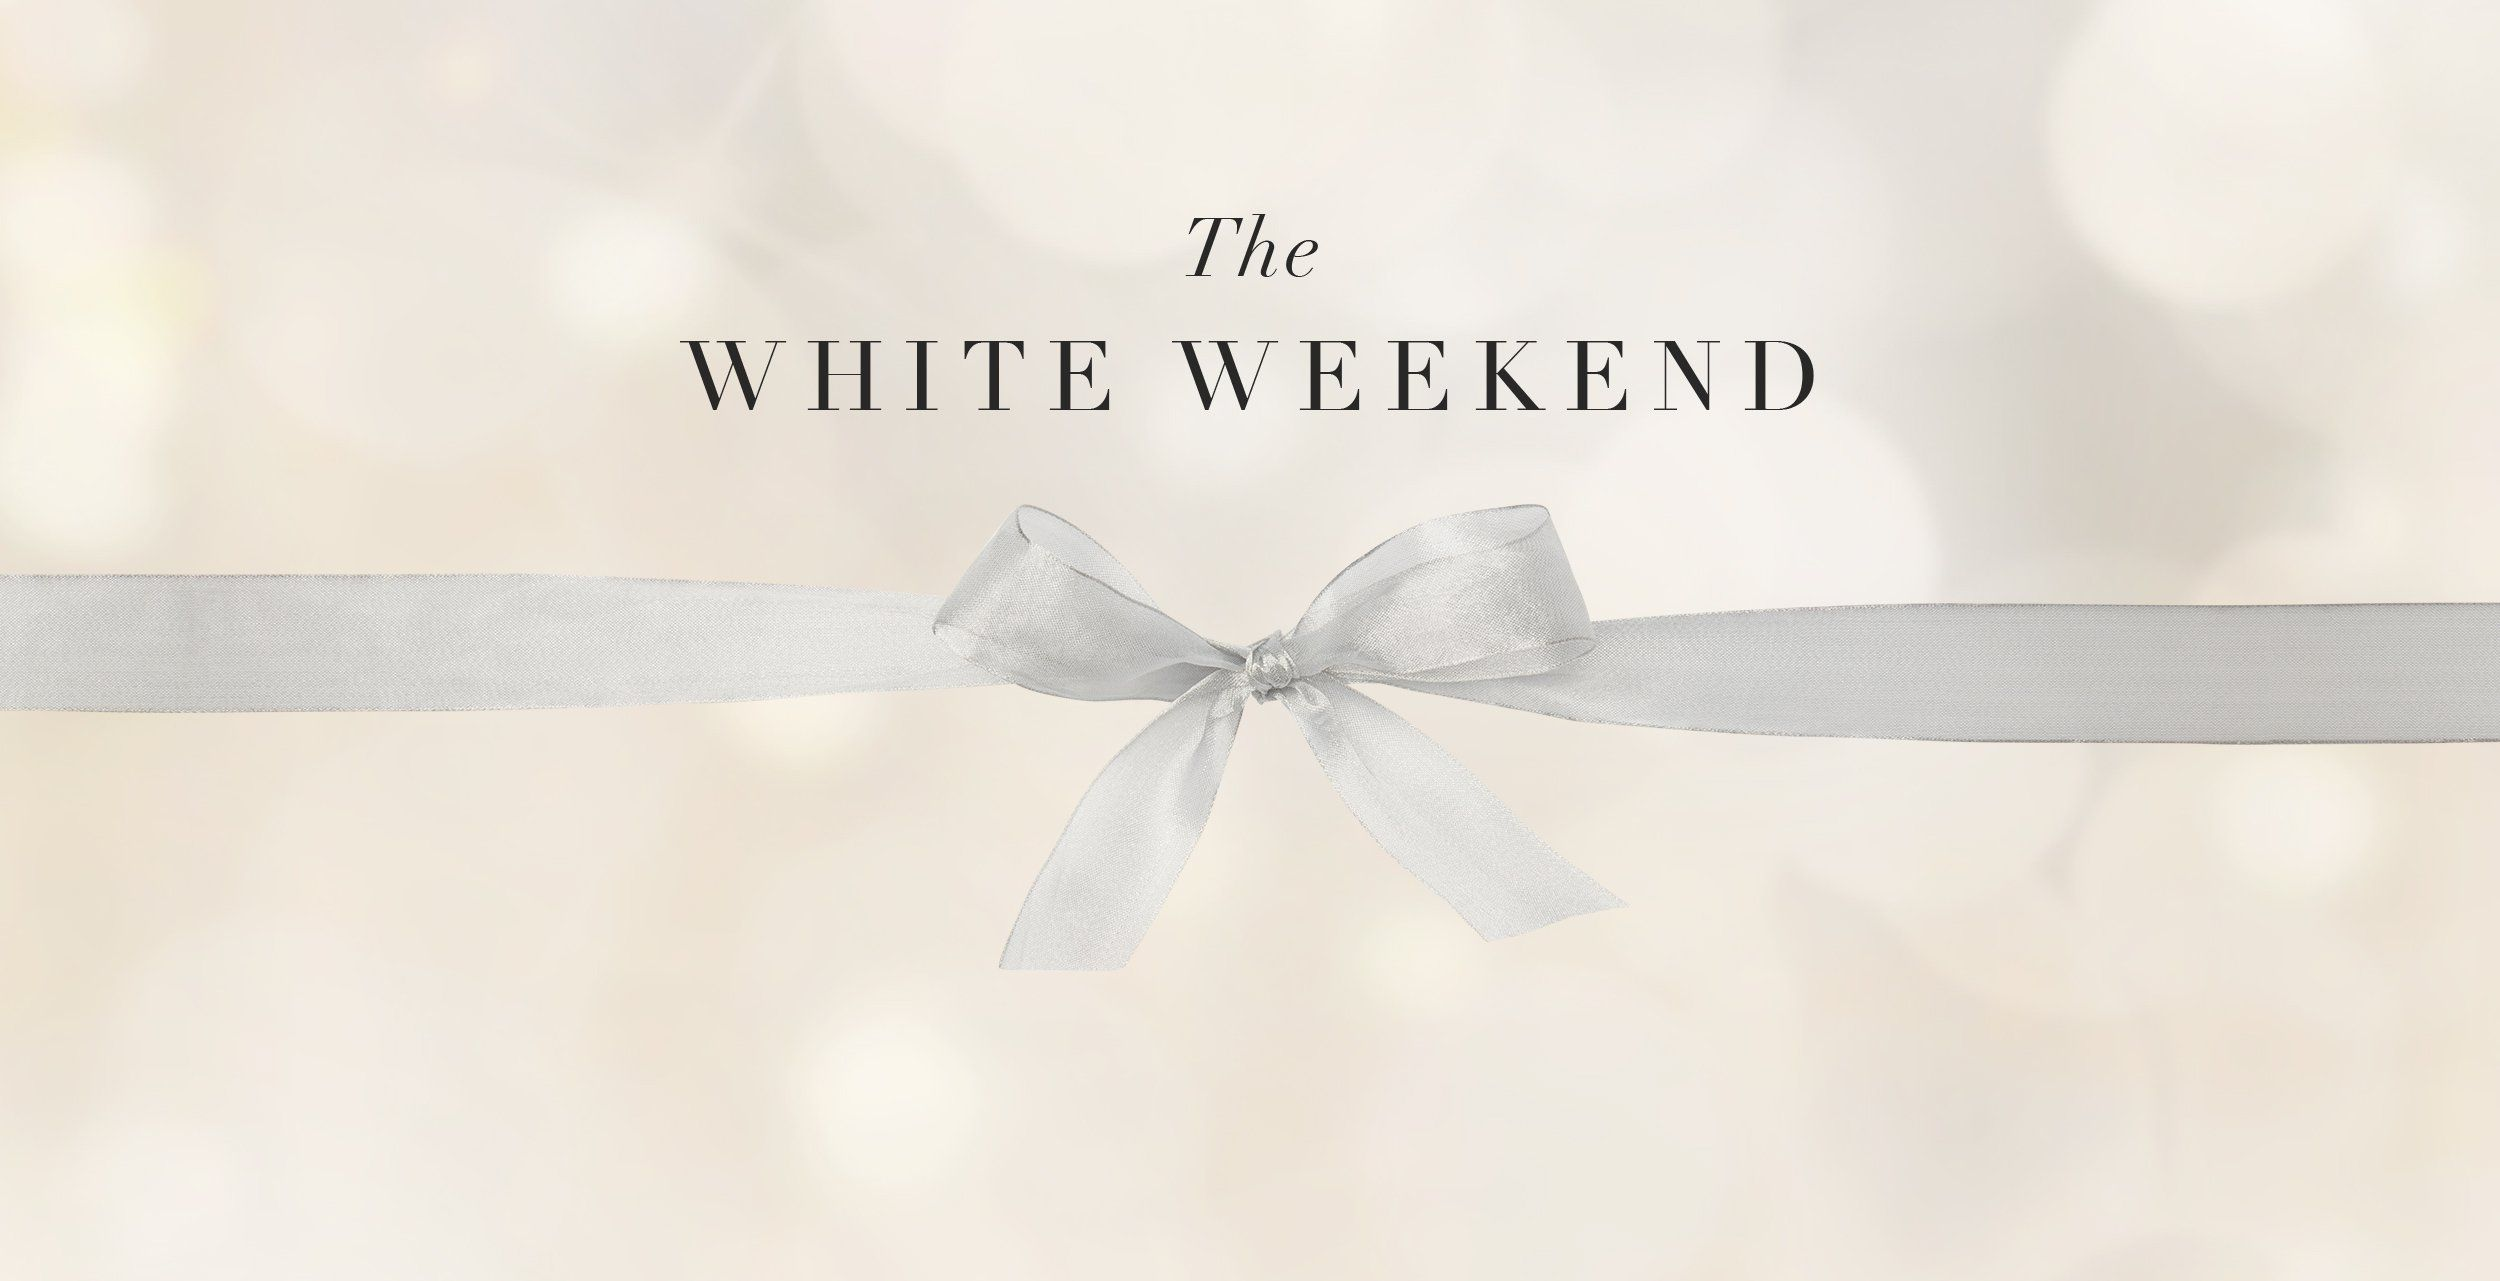 Black Friday The White Weekend